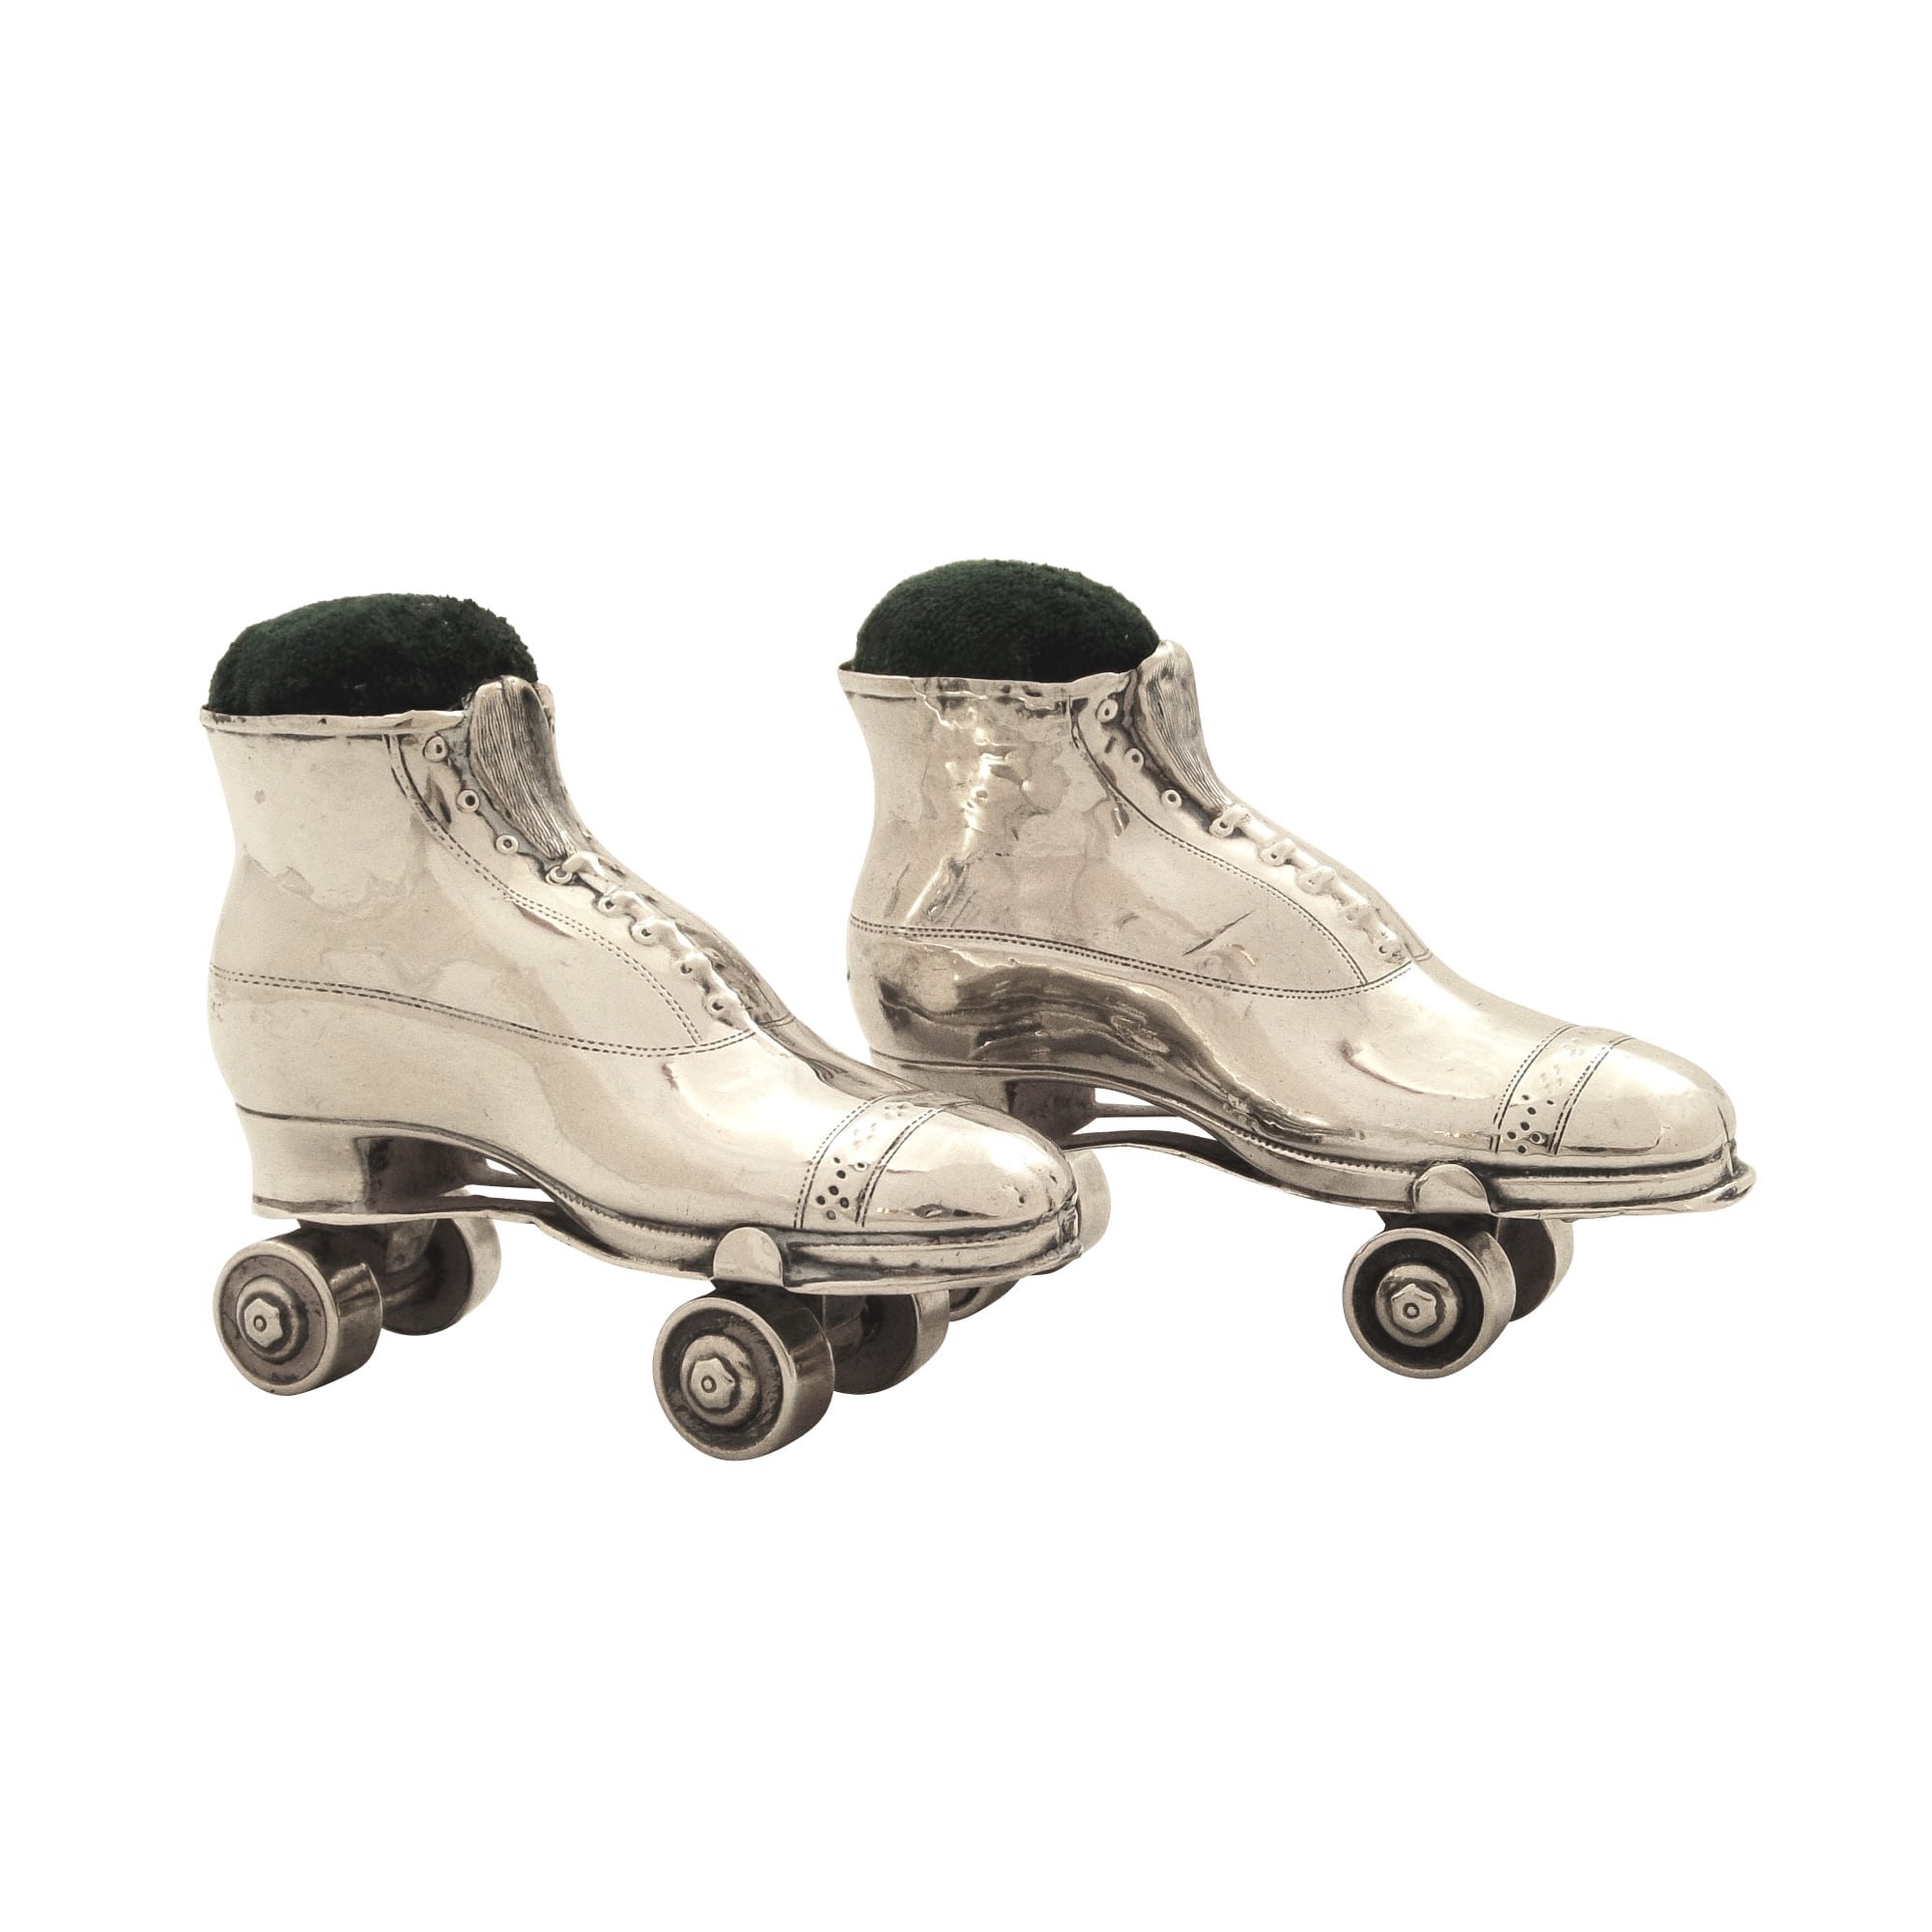 Pair of Antique Edwardian Sterling Silver Roller Skate Pin Cushions 1910